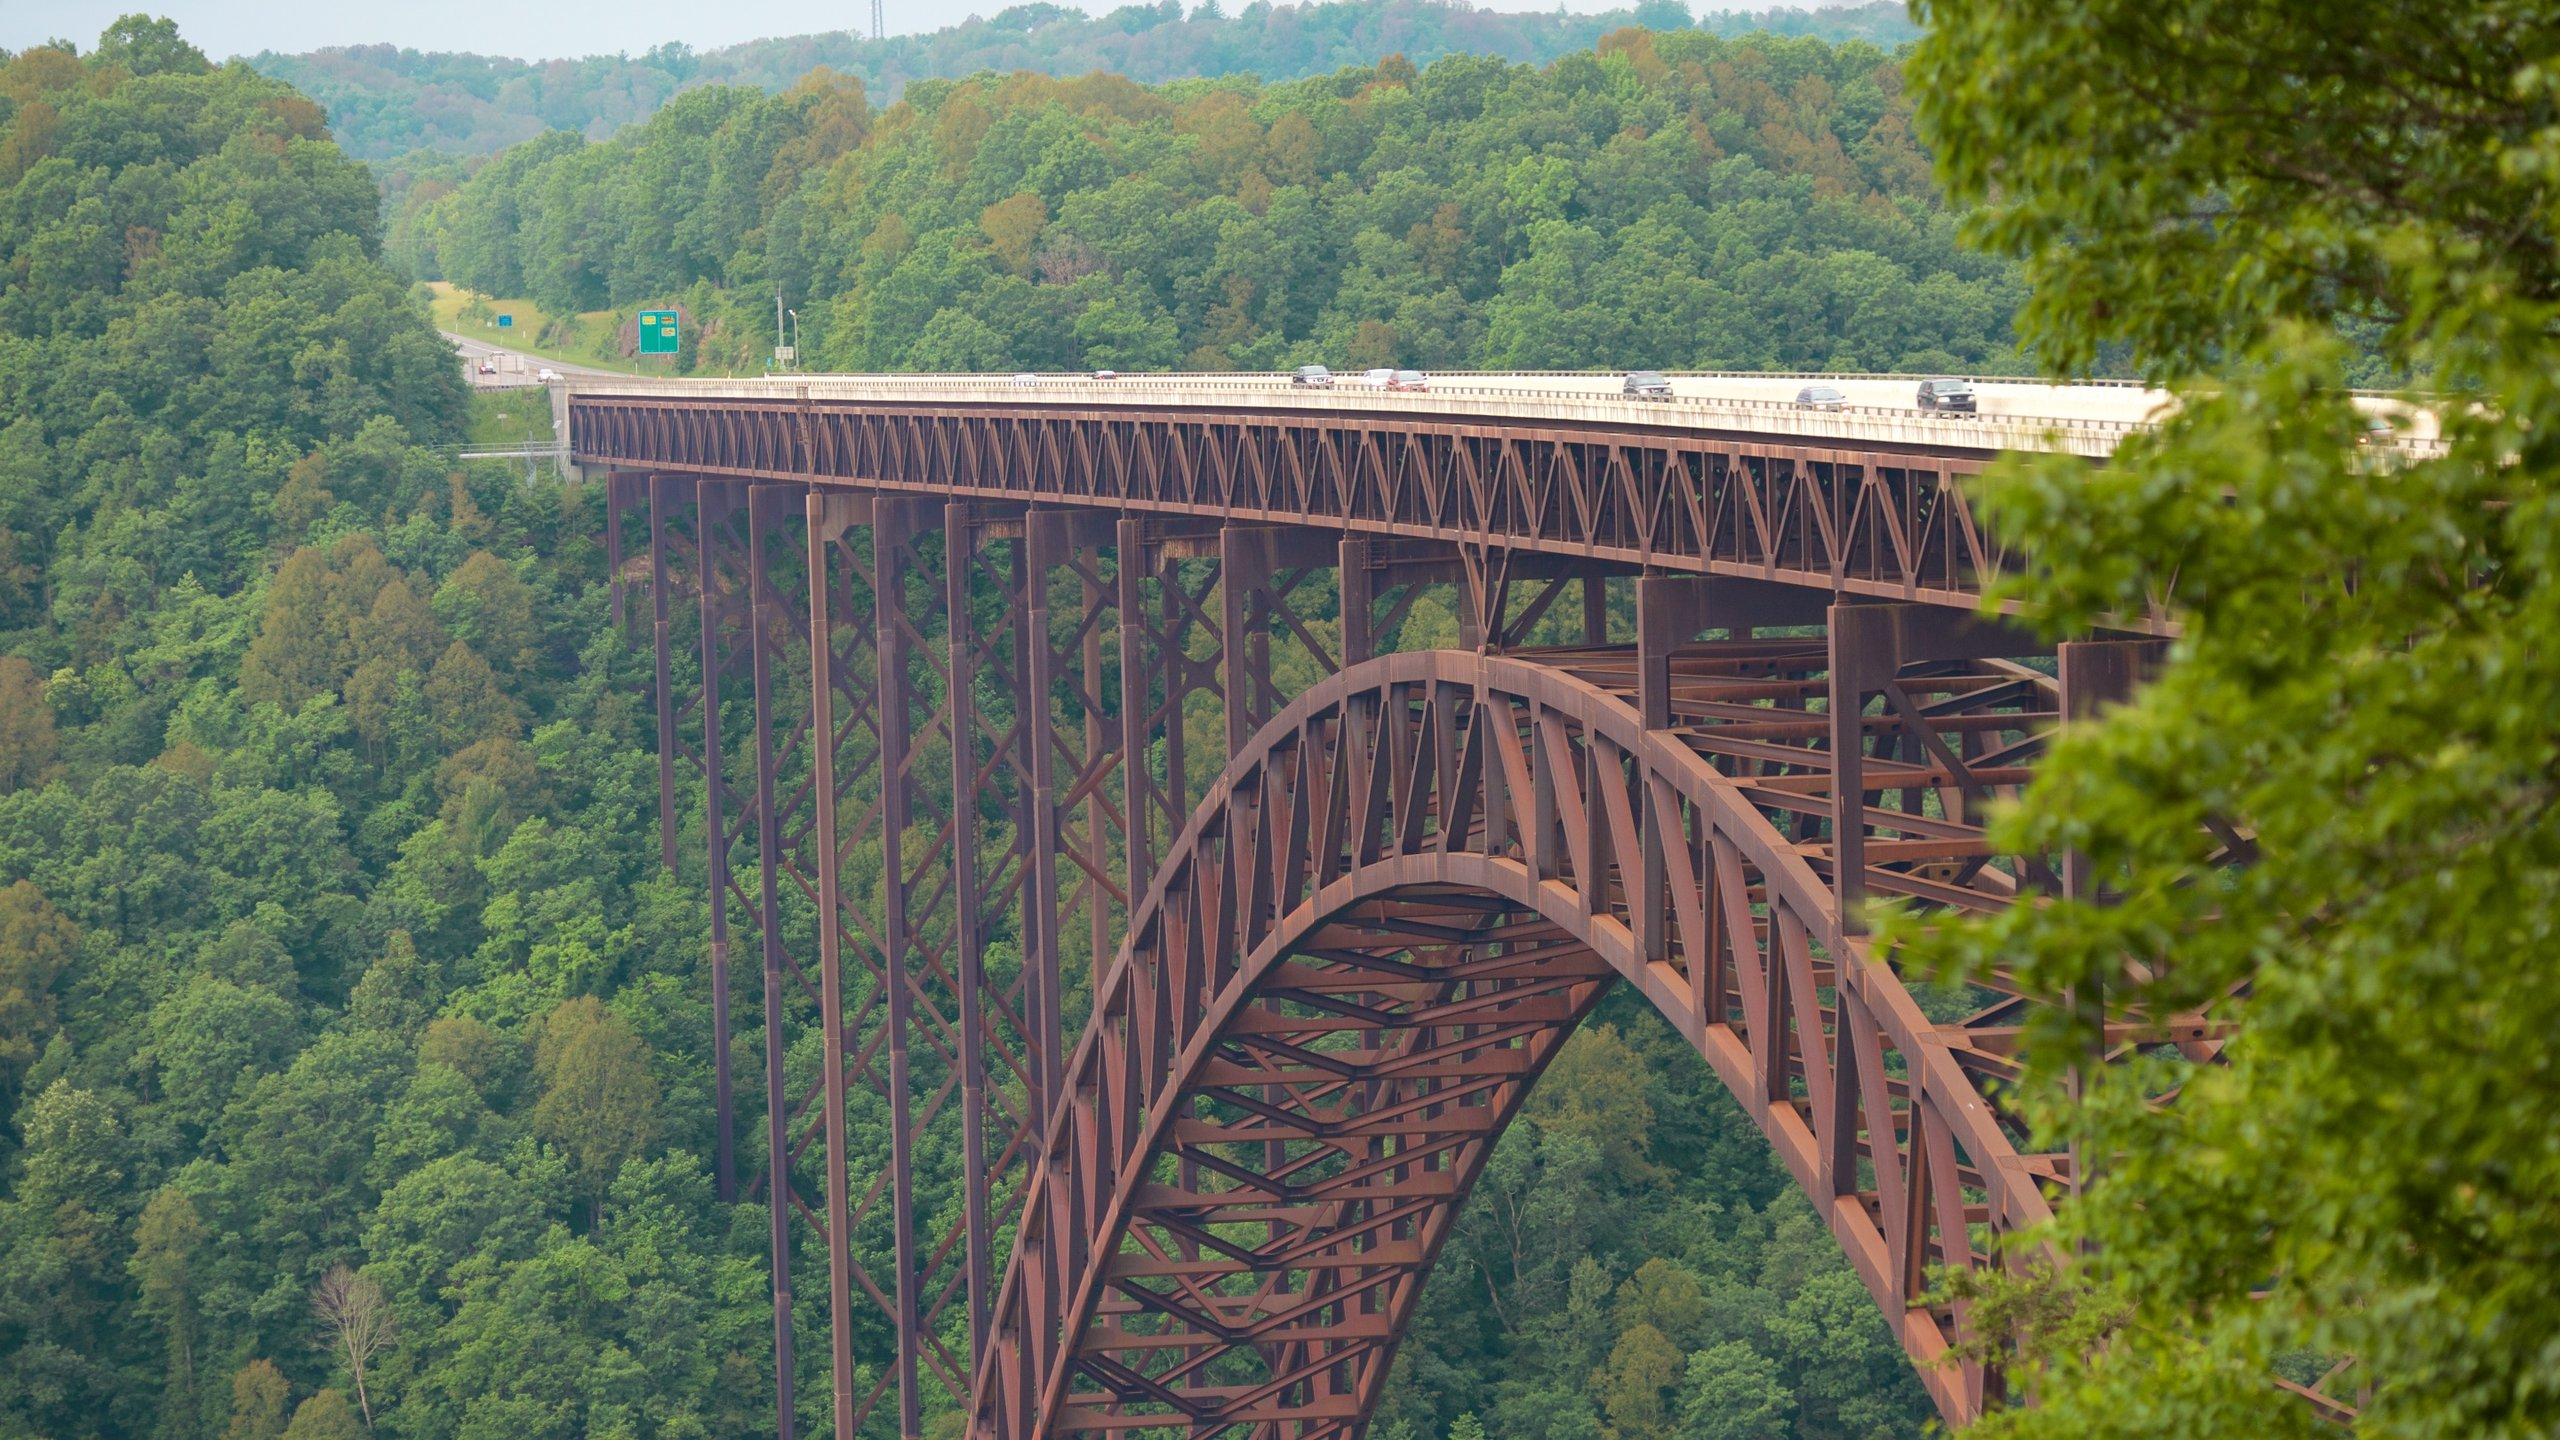 10 Best Hotels Closest To New River Gorge Bridge In Beckley